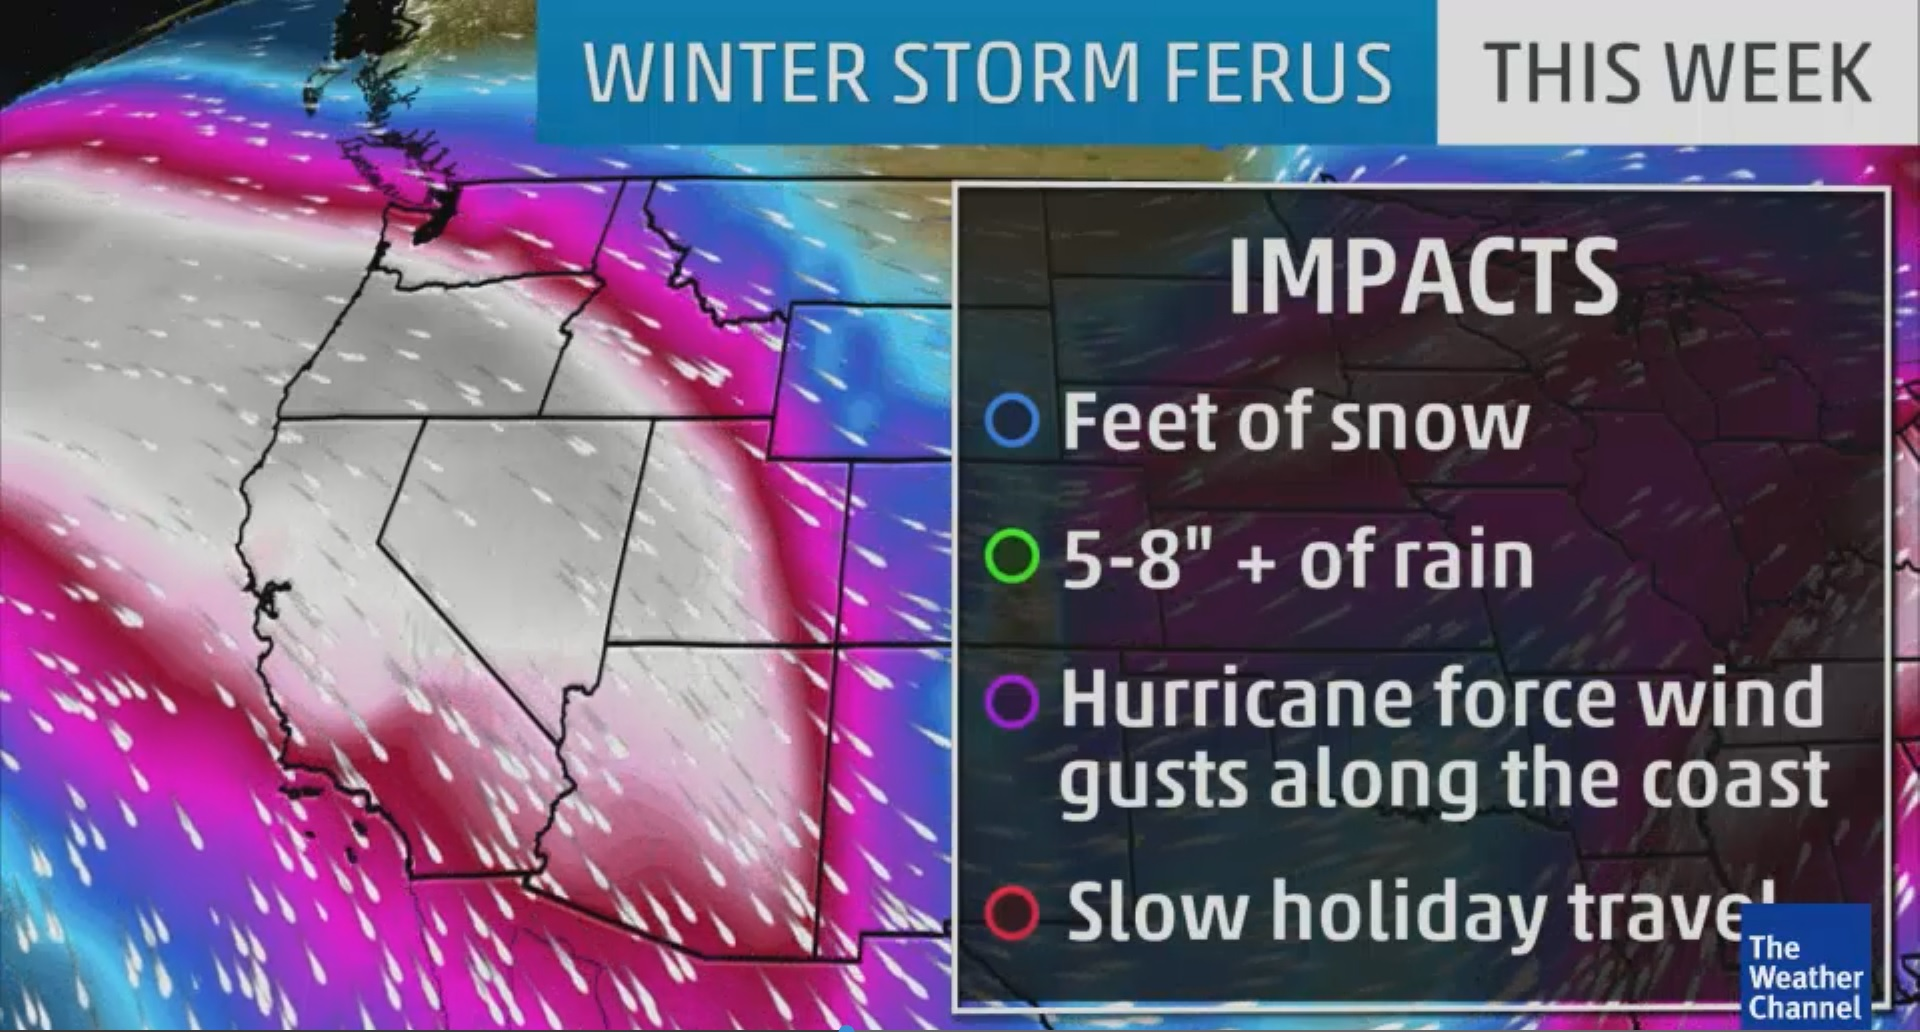 Winter Storm Ferus